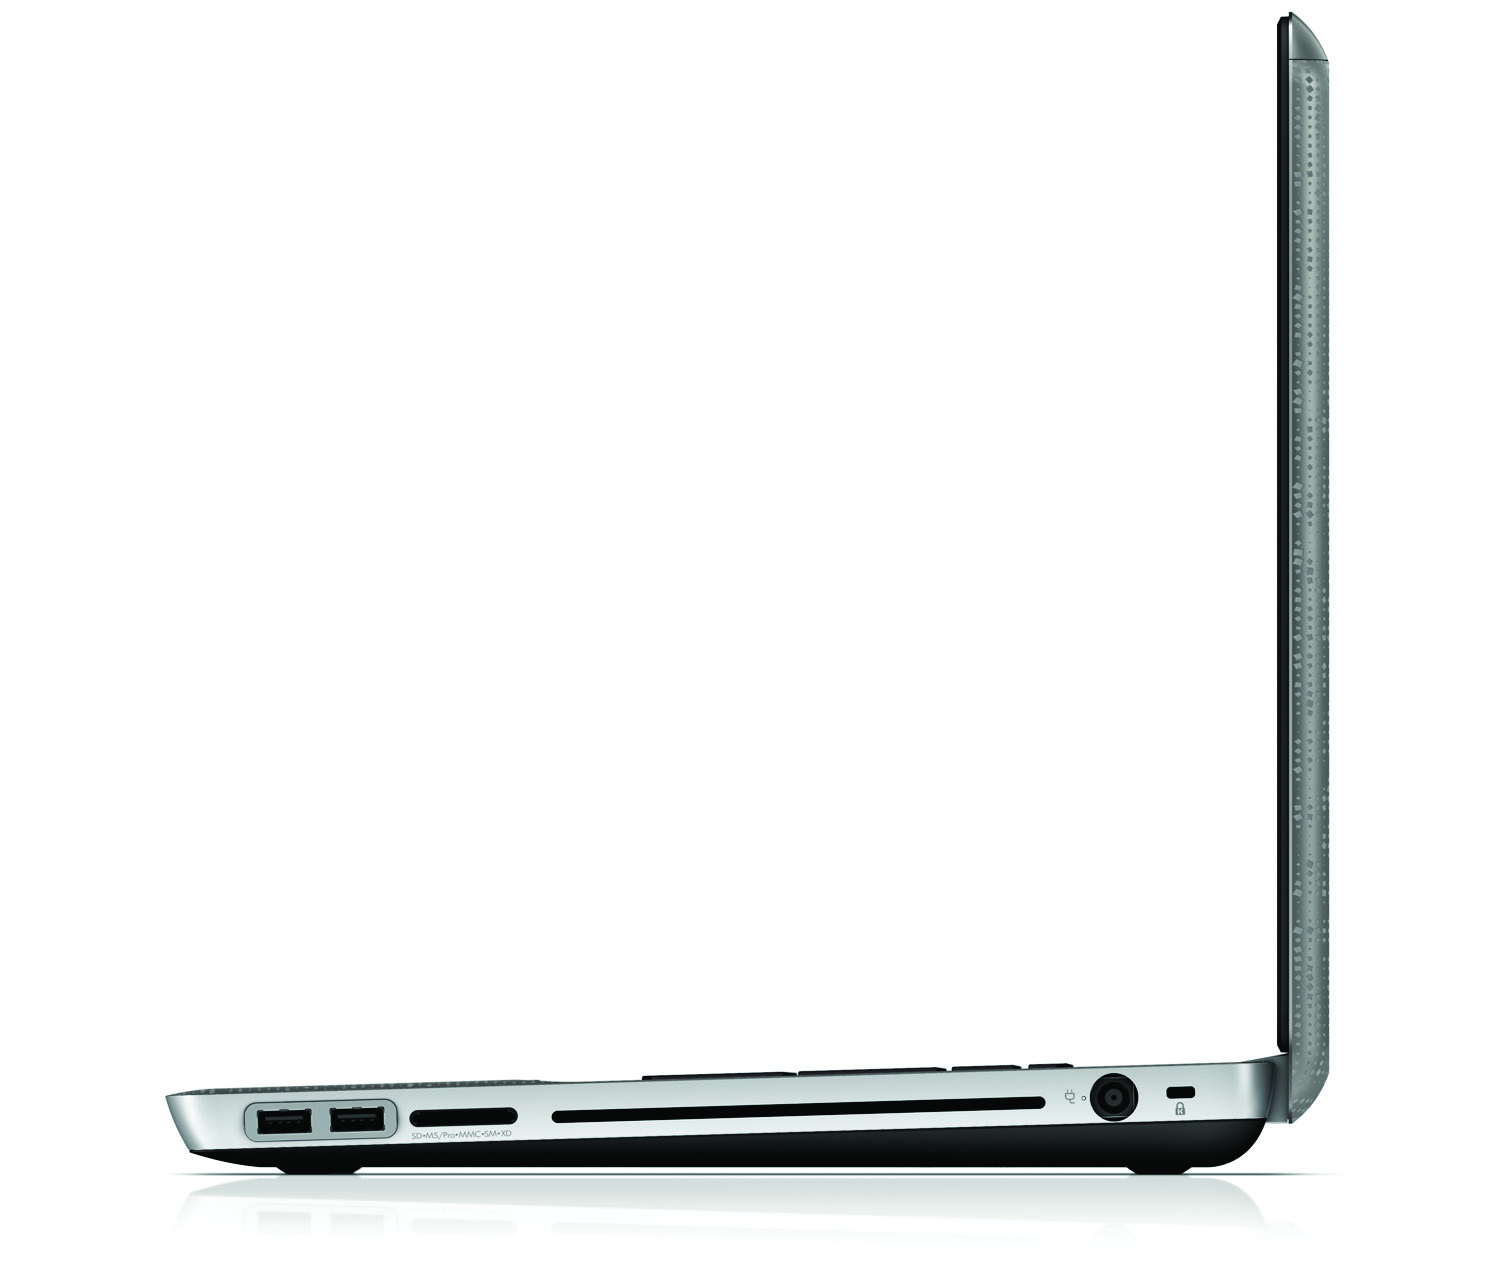 HP Envy 17, left open profile on white